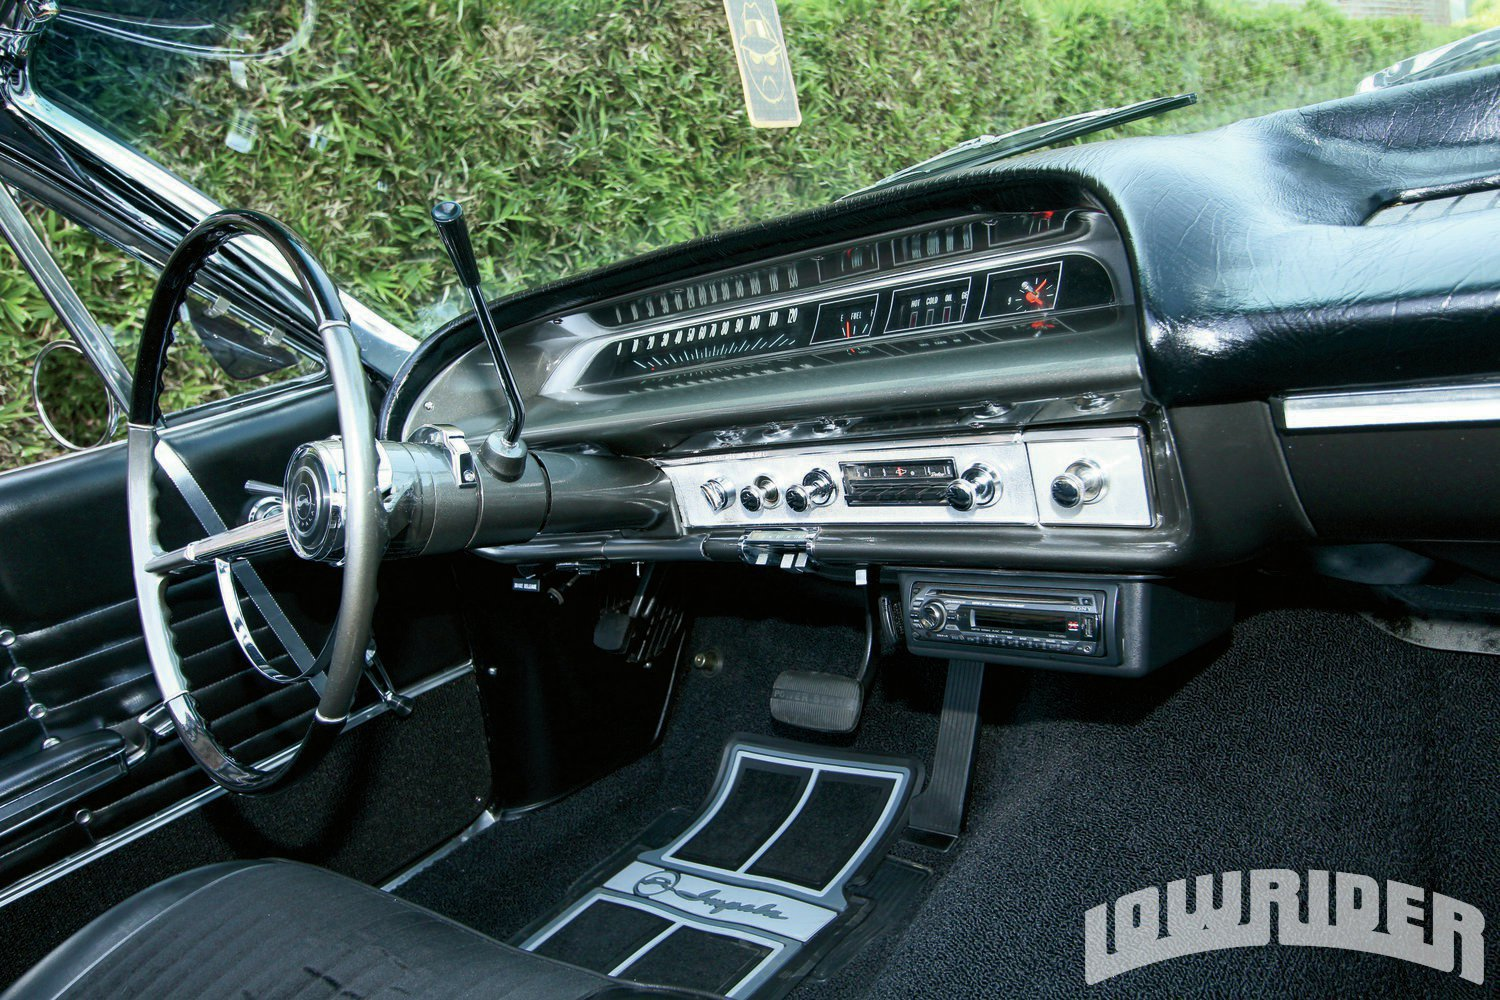 1964 chevrolet impala convertible dedicated rag. Black Bedroom Furniture Sets. Home Design Ideas